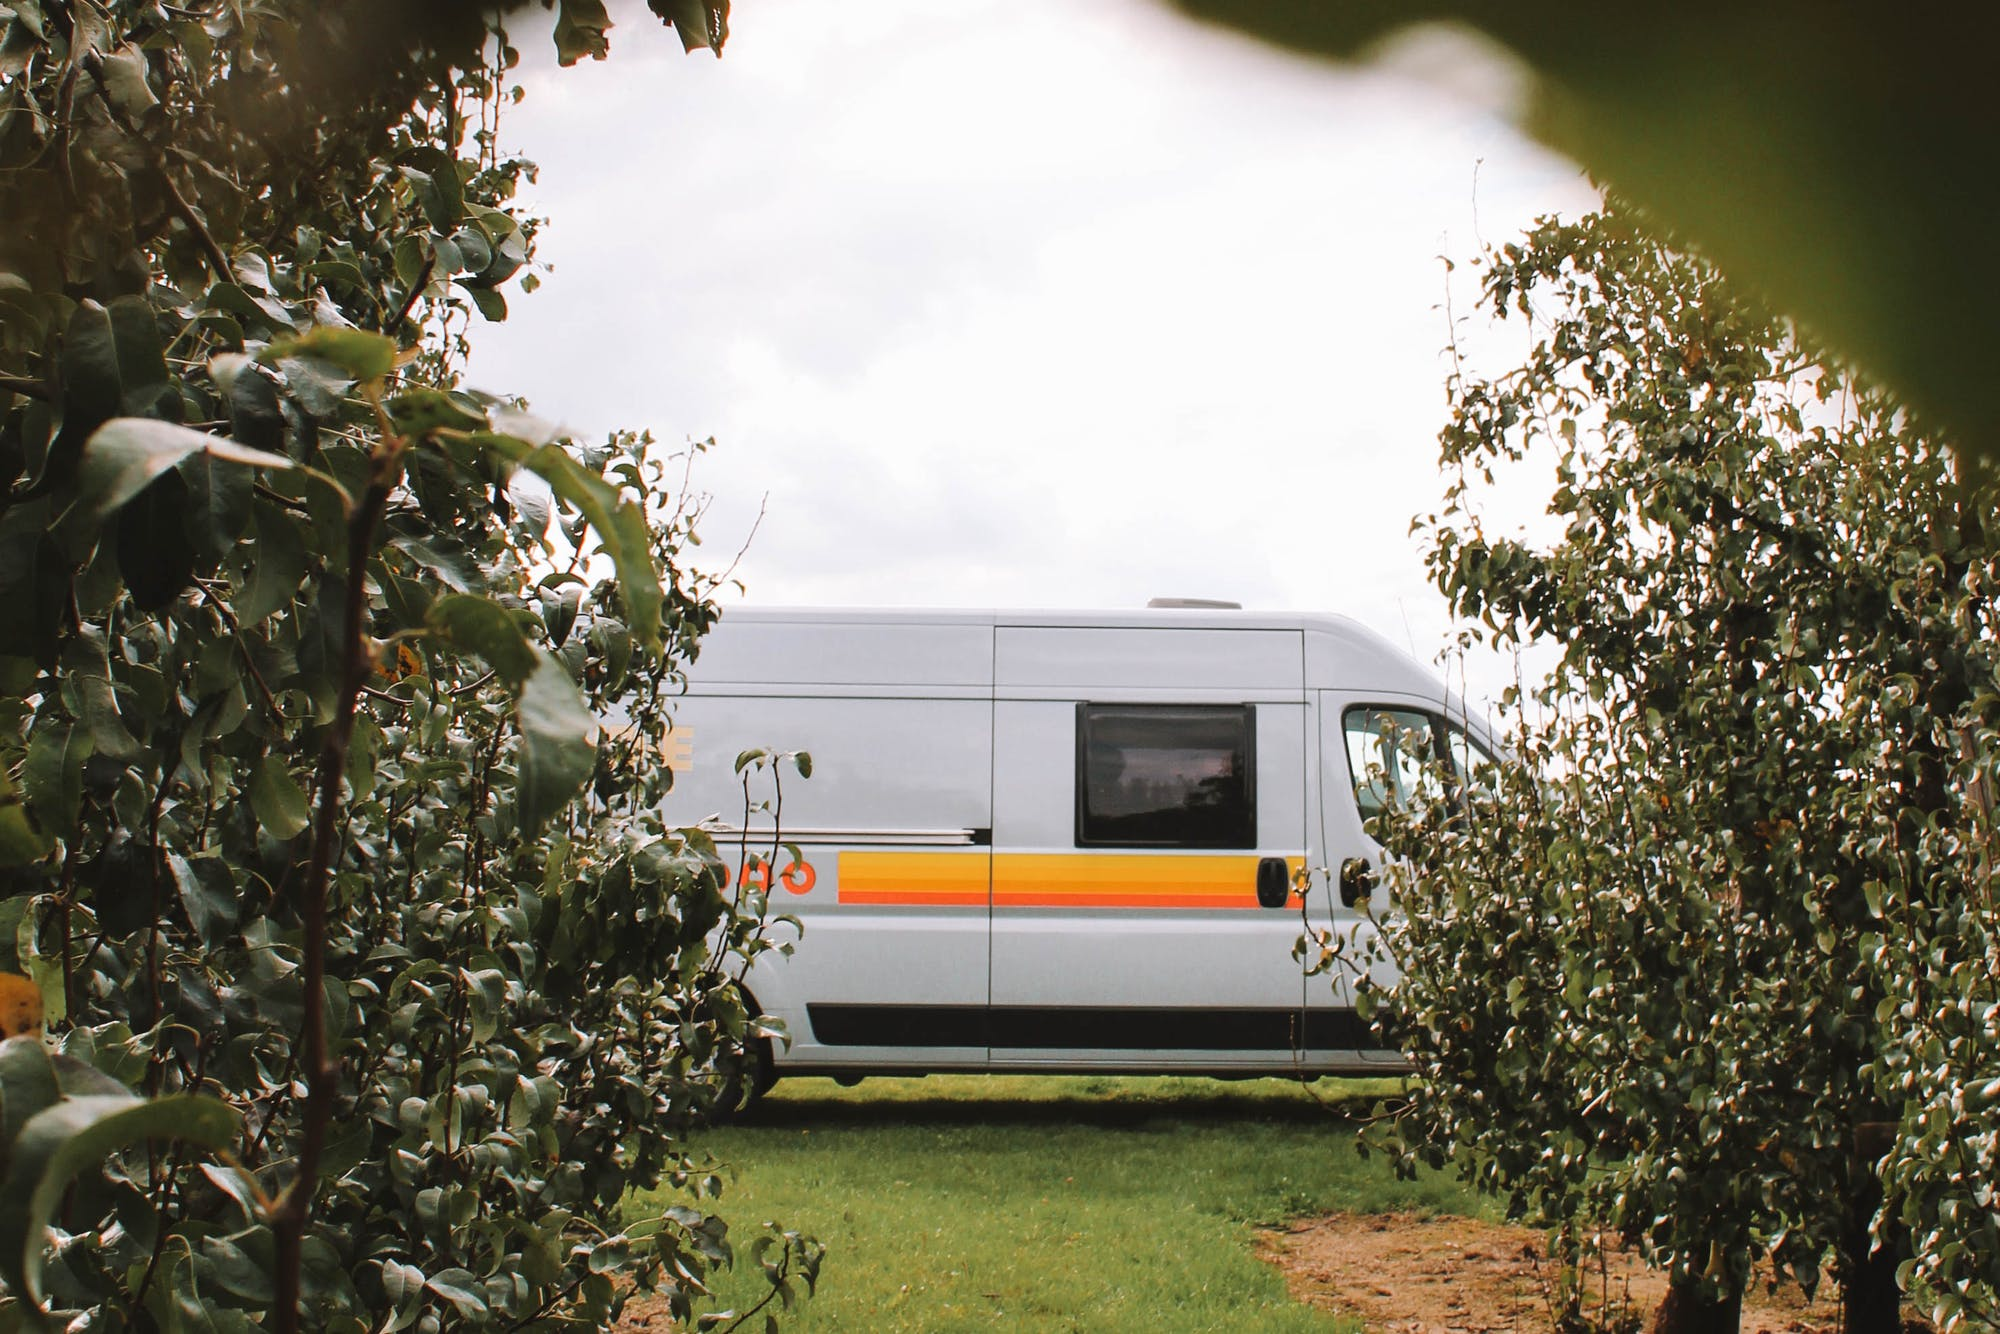 RV seen between planted trees